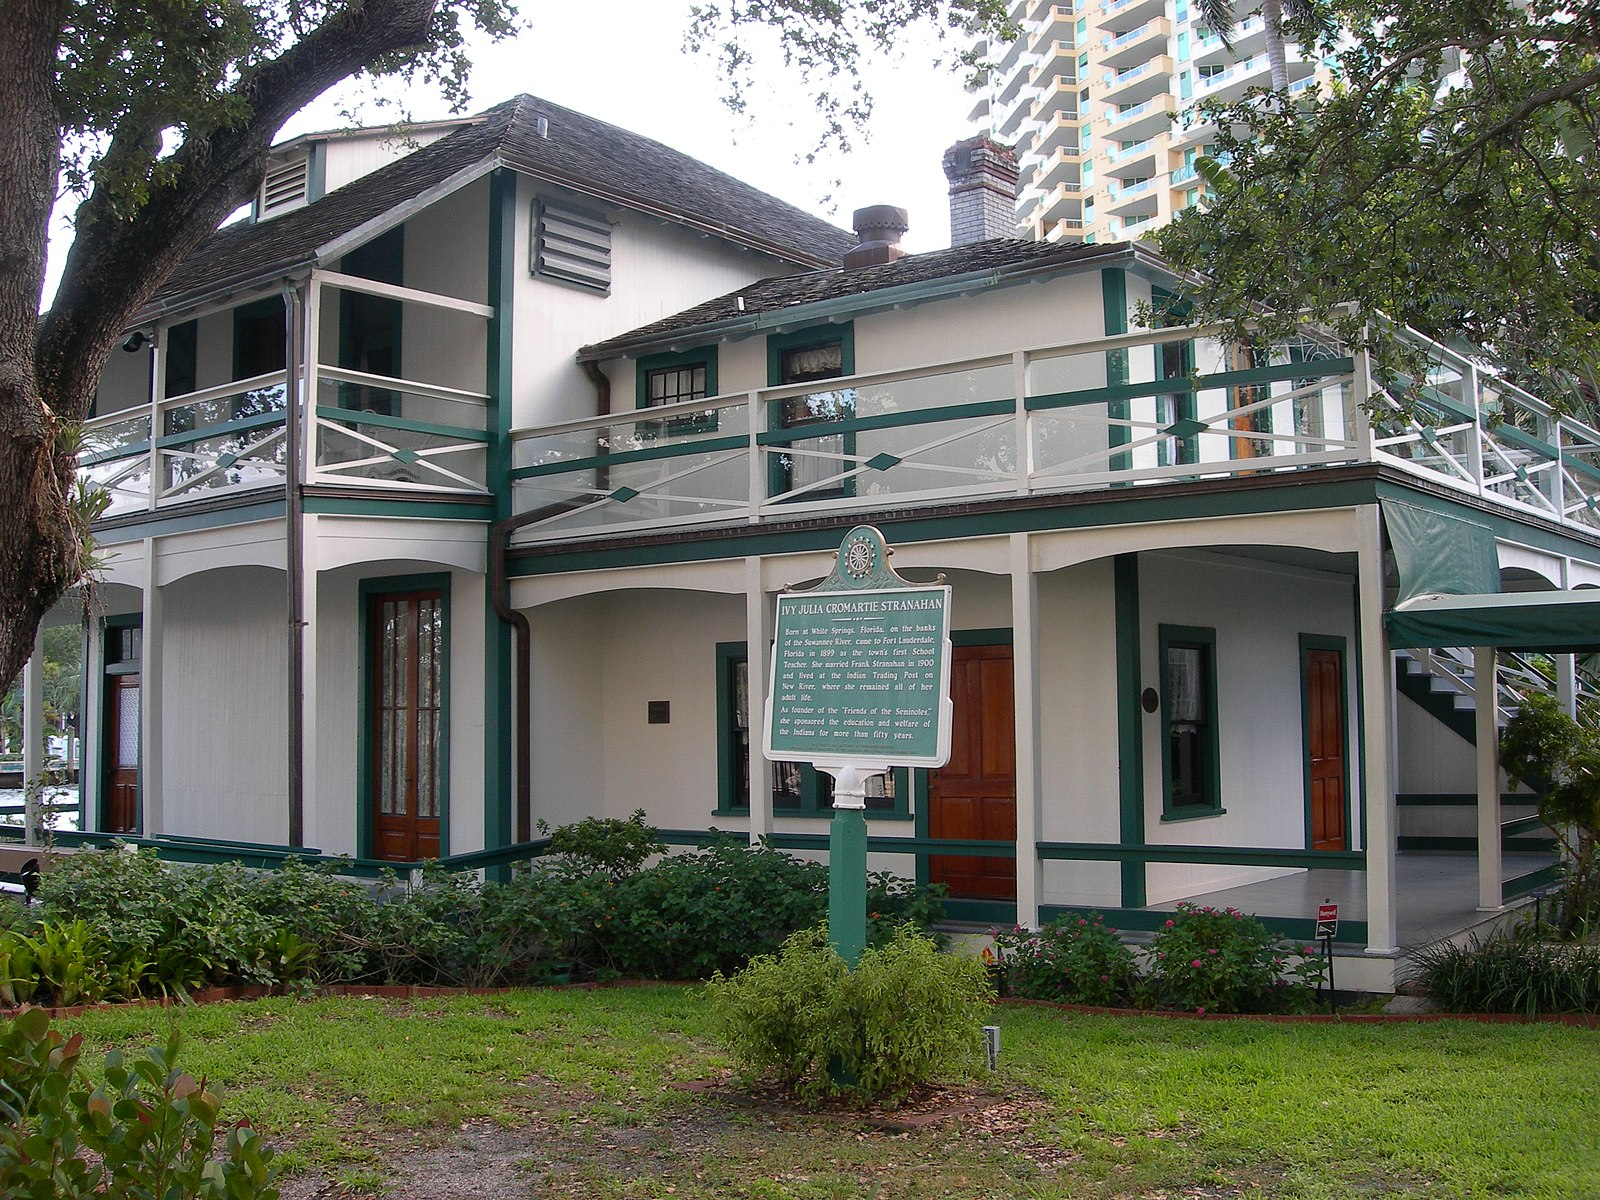 The Stranahan House in Fort Lauderdale - Photo